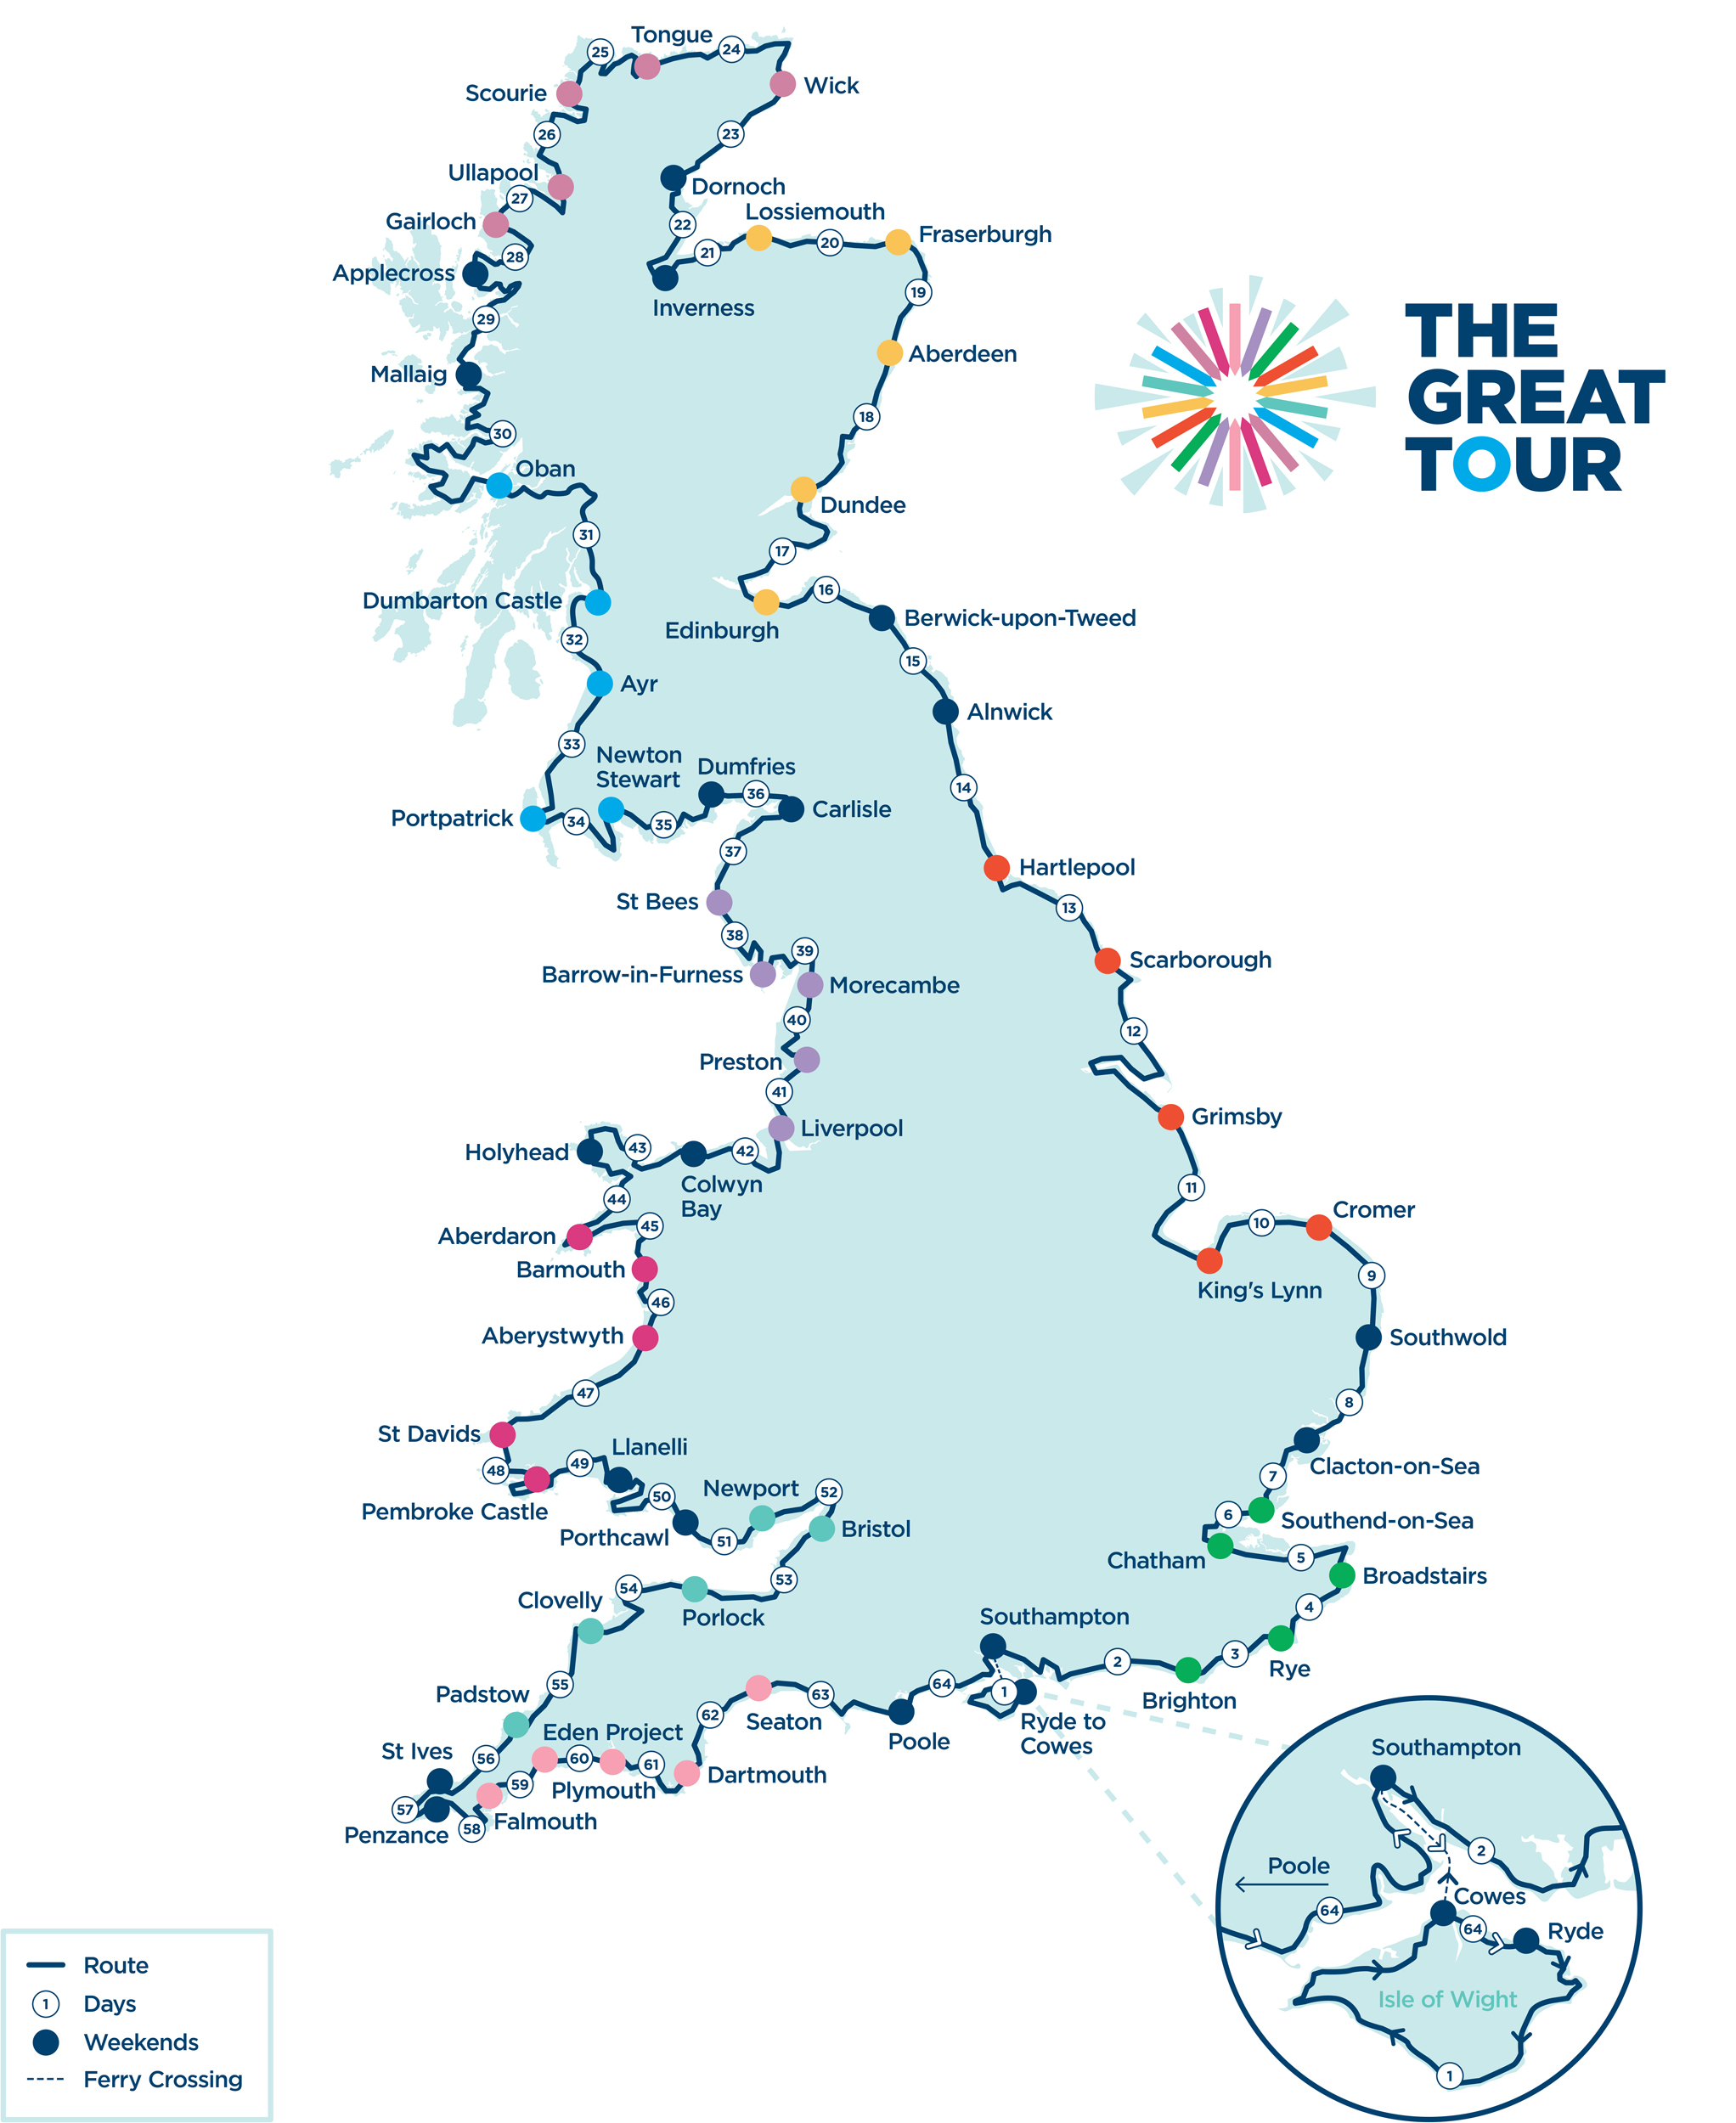 The Great Tour Route